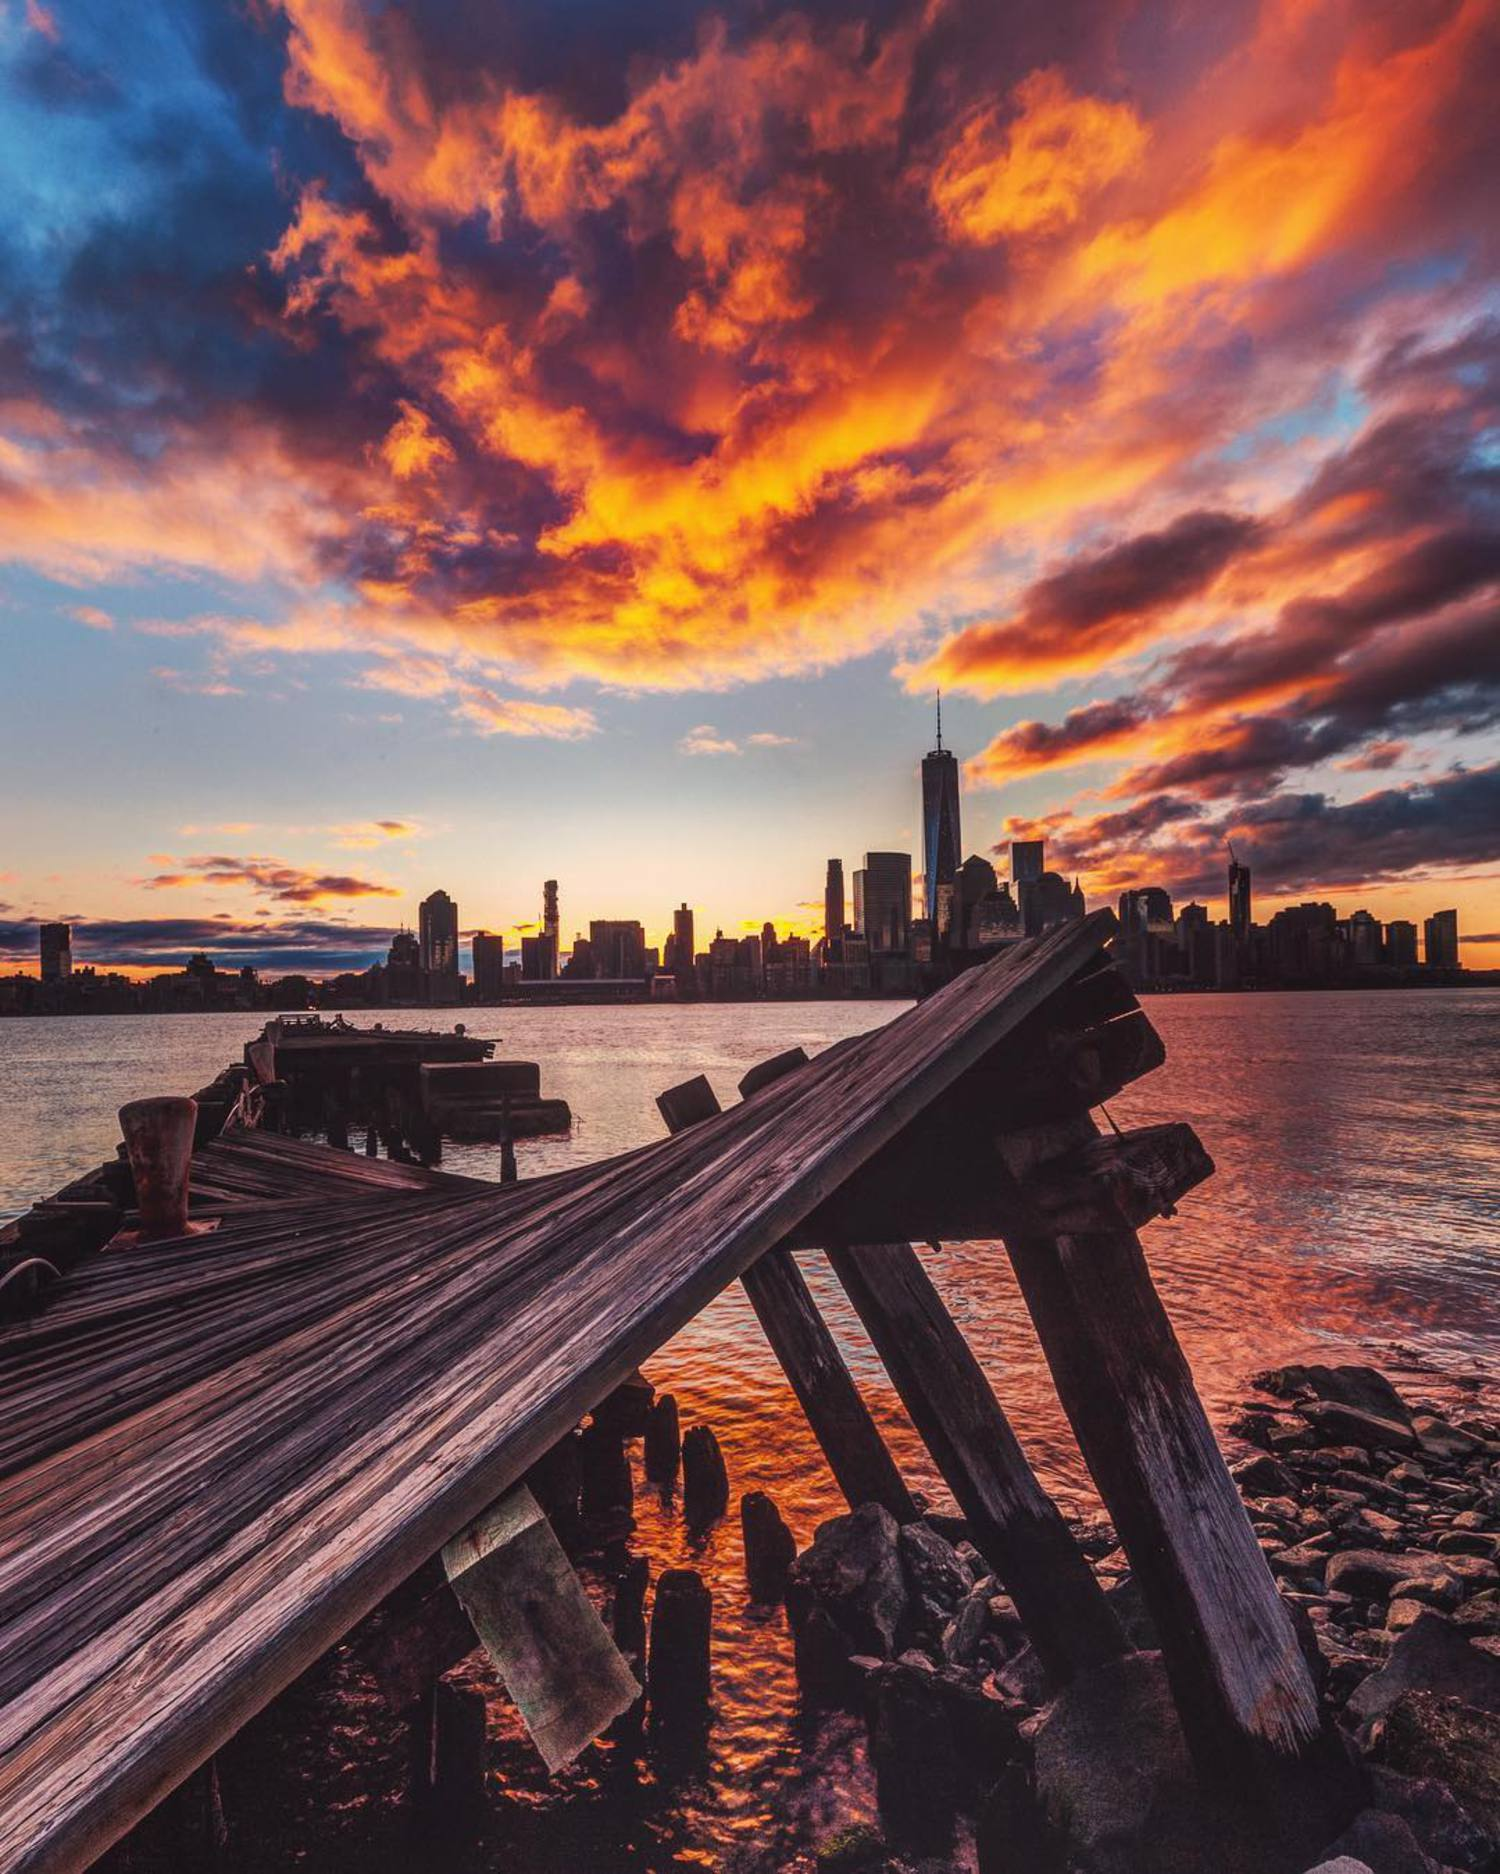 "This is another one from the best sunrise ever in New York with @johnnyyonkers @papakila @chief770 @gmathewsva @grimace_586 @dubsonata ----------------------------------------------------- Brucegetty@icloud.com ----------------------------------------------------- ✨Special notice ✨ My good friend ""Israel @marinophotography and I @gettyphotography  will be doing photography and processing workshops and photo tours all around the Bay Area and the Sacramento valley, 1 on 1 or small group teaching classes, if you are interested please contact Me through my page or drop a comment below, thank you. ----------------------------------------------------- ""Recommendation"" I would like to recommend my good friend Dave's printshop, ""@PHOTOWORKSSF, it's a fine art printing shop located in the heart of San Francisco, Ca . I print all of my work at PHOTOWORKS. For more information please visit: PHOTOWORKSSF.COM when you talk to Dave please tell him I sent you ) ----------------------------------------------------- ""Check out "" @lilian_hoffman_photo 👈🏻 ----------------------------------------------------- 📷 Shot Info📷 Nikon D8 10  Lens: Nikon 14 to 24 Tripod Feisol ct3372  Natural Light  Manual Mode Shutter . . . .  1/10 Aperture: F20 Iso: 100 WB auto RAW ---------------------------------------------------- #earthpix #awesome_earthpix #wonderful_earthpix #wonderful_places #ourplanetdaily #travel #awesomeearth #bestvacations #beautifuldestinations #nakedplanet #fantastic_earth #igworldclub #discoverearth #warrenjc #theglobewanderer #ig_worldclub #earthfocus #travelawesome #nature #landscape_lovers #ig_exquisite #global_hotshotz #earthofficial #wildernessculture #special_shots #jaw_dropping_shots #worldcaptures #neverstopexploring #moodygrams"